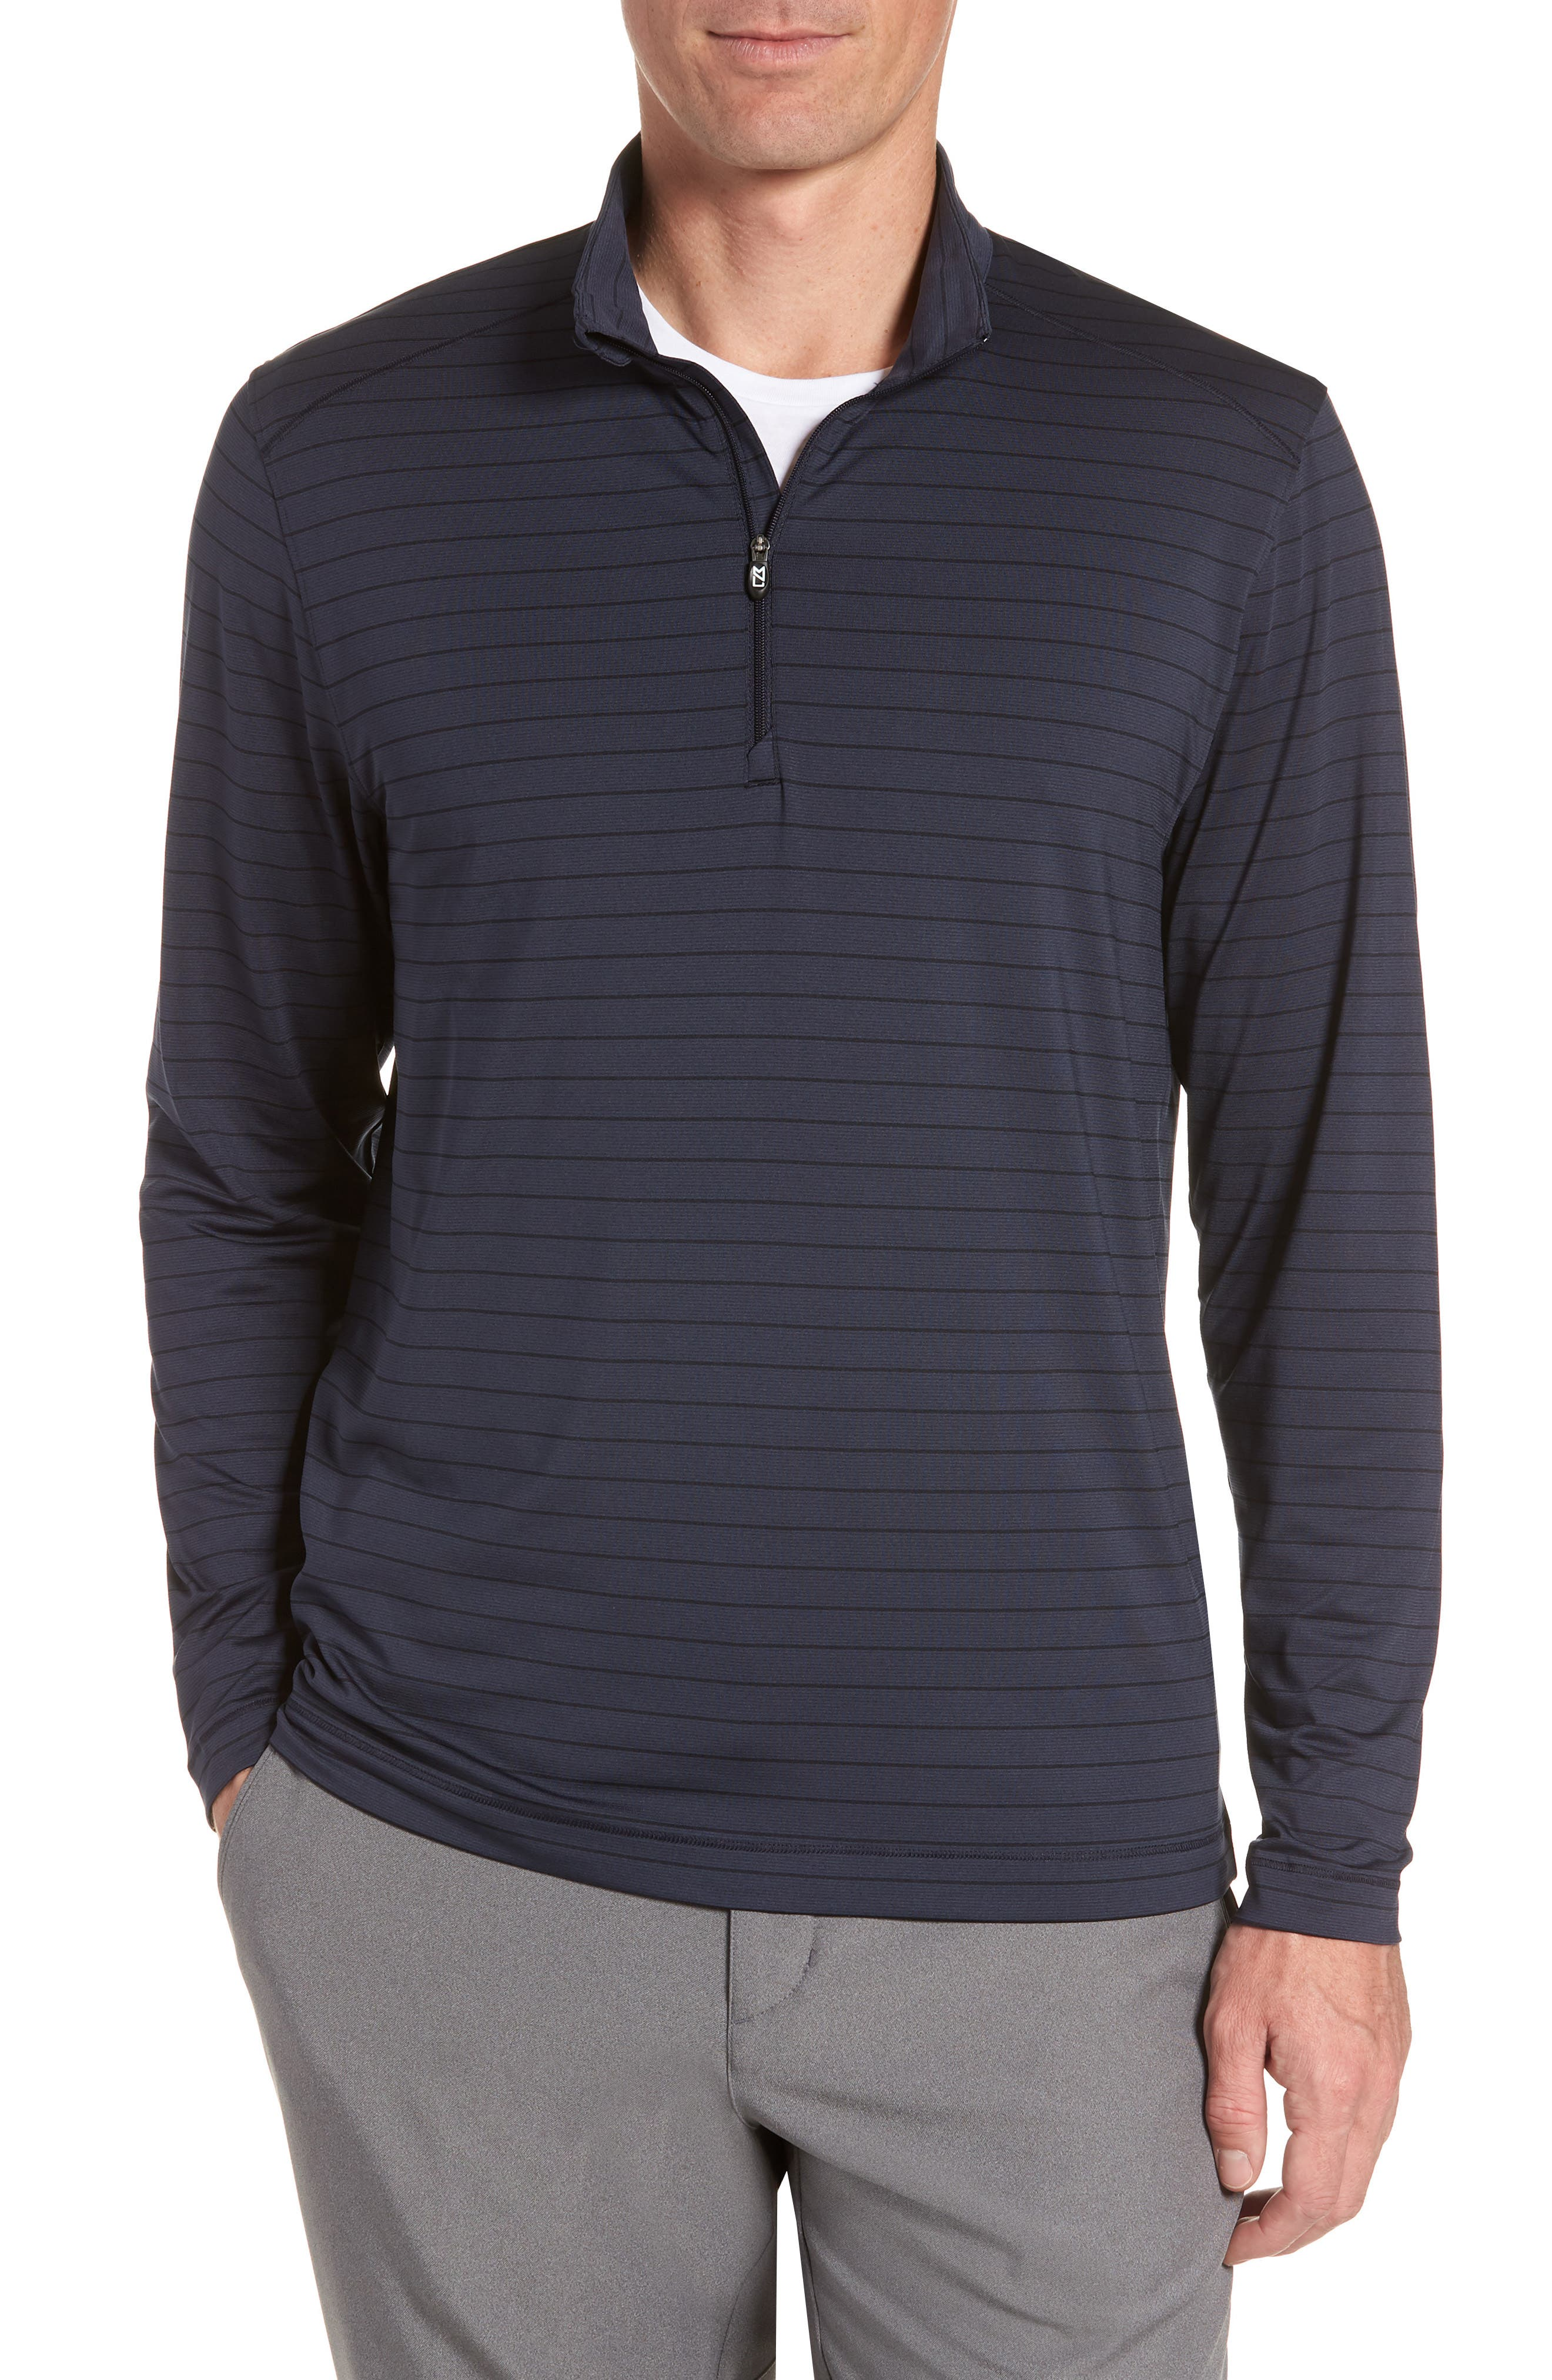 Holman Stripe Half Zip Pullover,                         Main,                         color, LIBERTY NAVY HEATHER